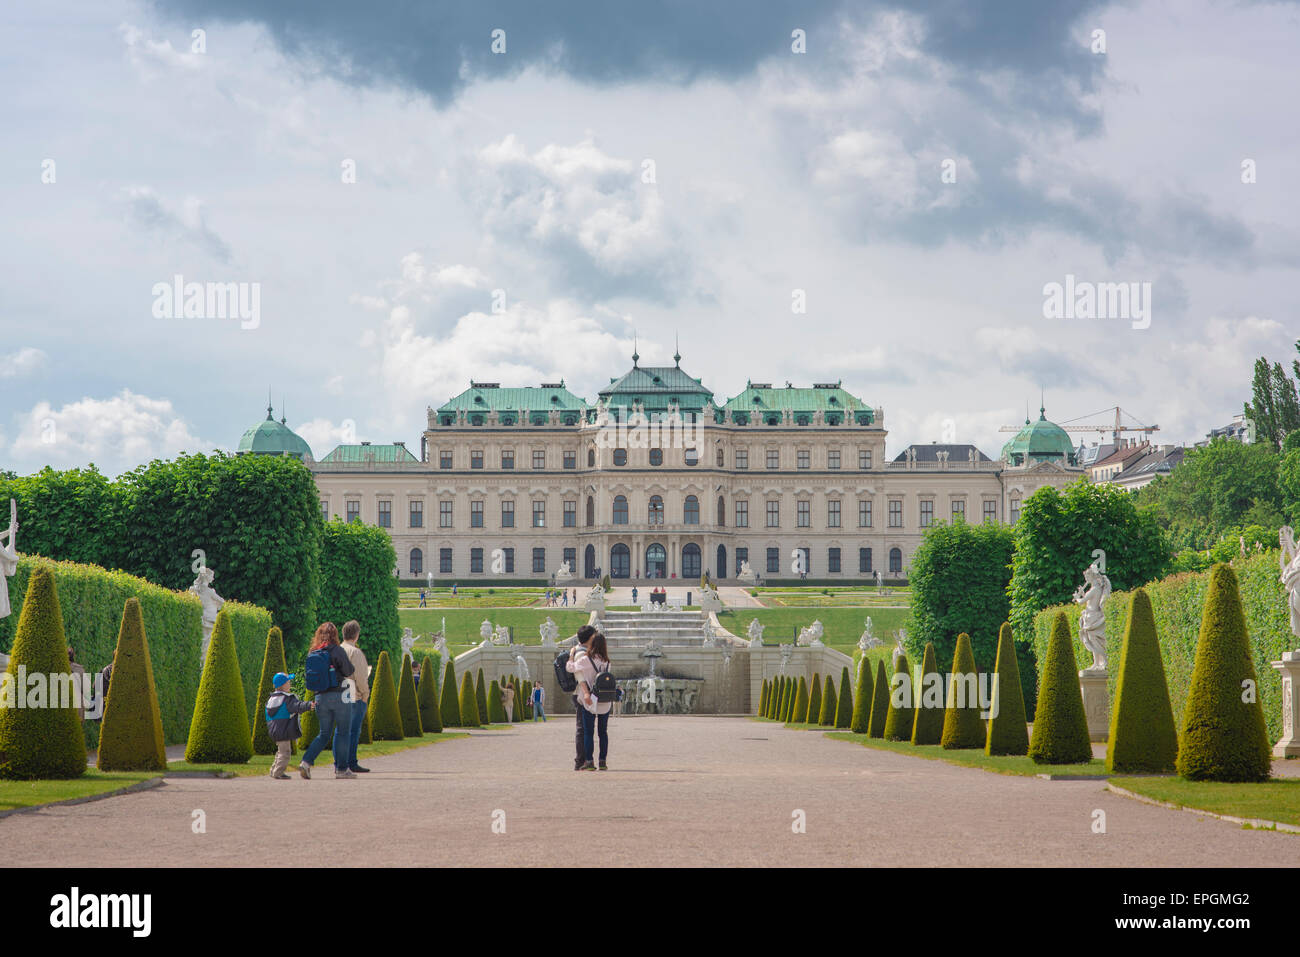 Vienna Belvedere Palace garden, tourists at the Schloss Belvedere take a morning stroll through its famous landscaped - Stock Image